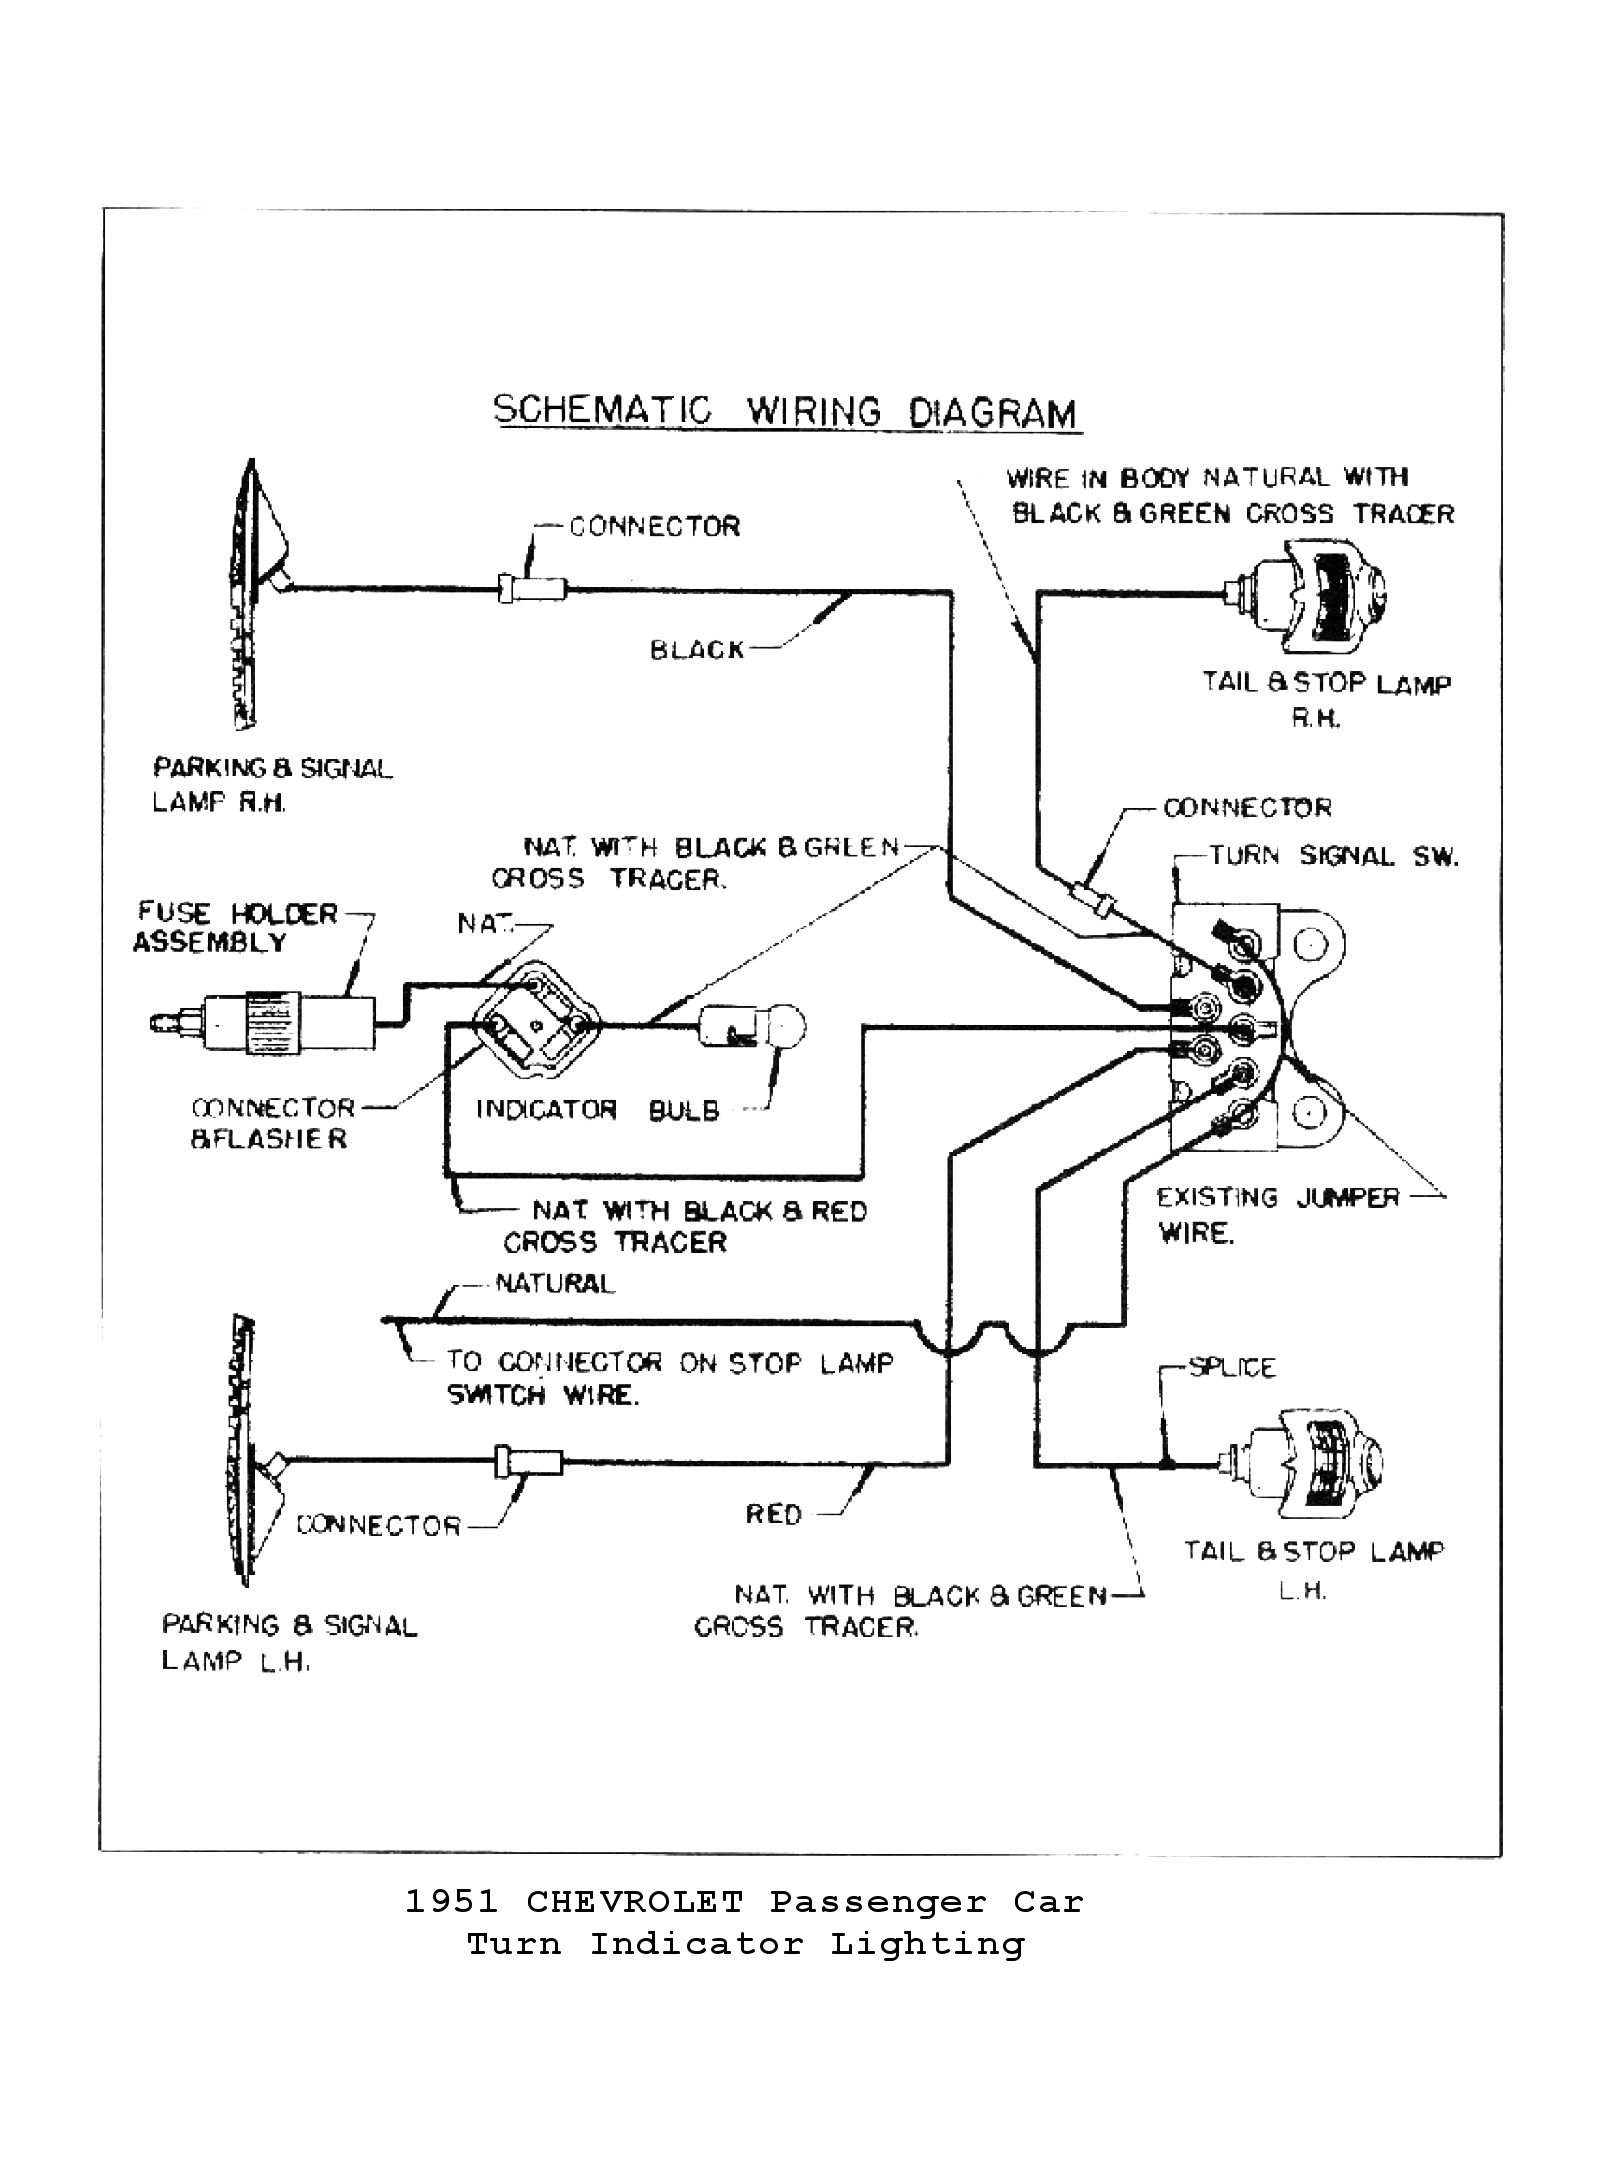 5152turnsignals chevy wiring diagrams 1957 chevy truck turn signal wiring diagram at pacquiaovsvargaslive.co